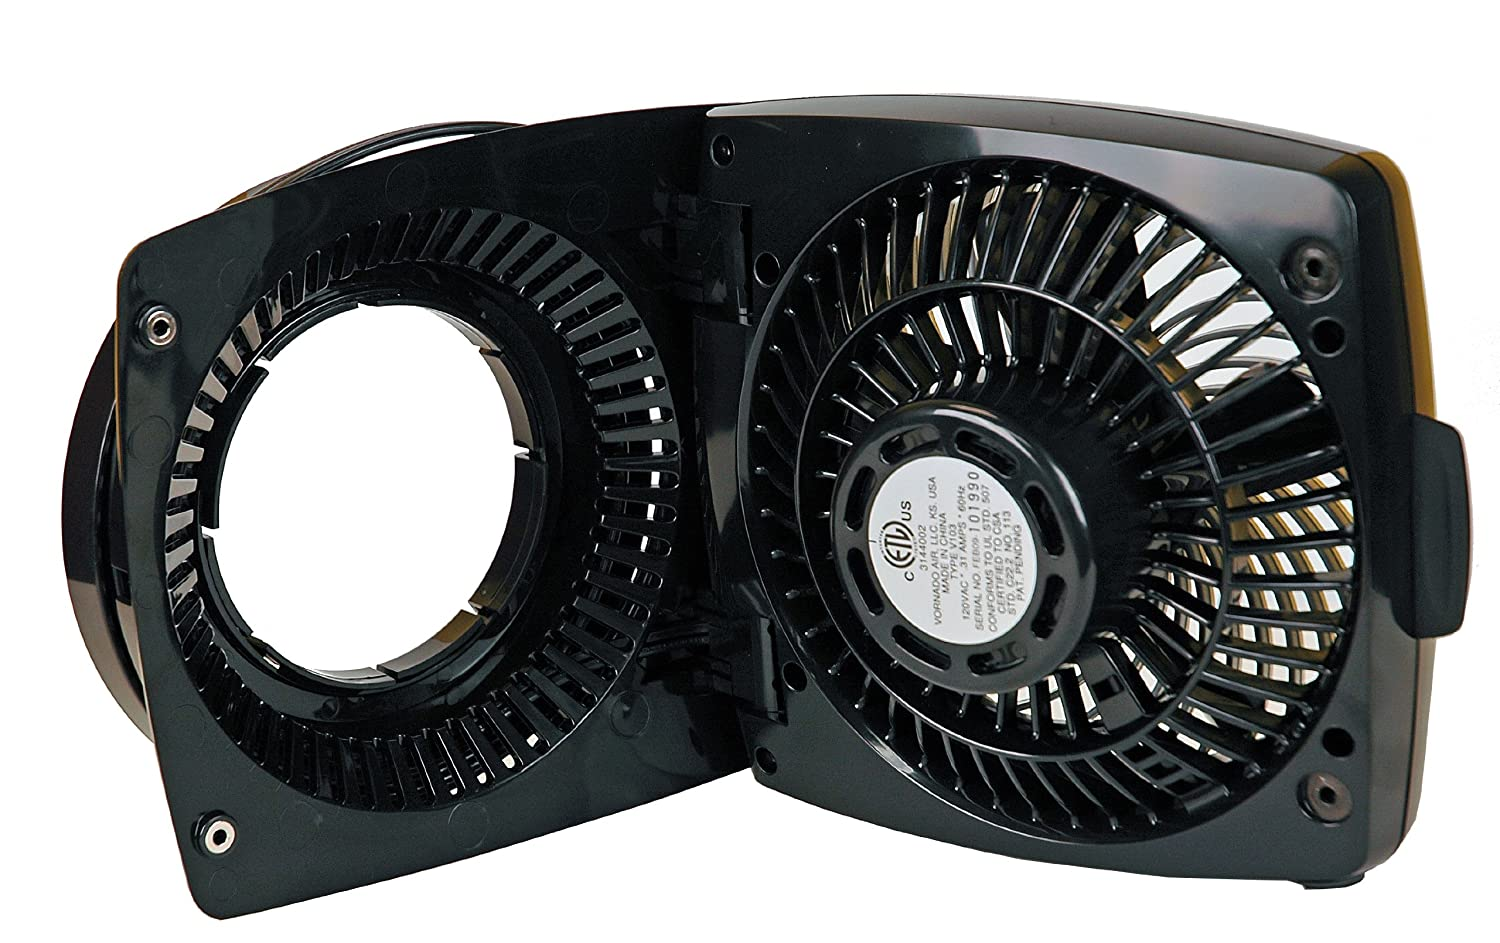 Amazon.com: Vornado CR1-0117-06 Under-cabinet Personal Fan: Home ...